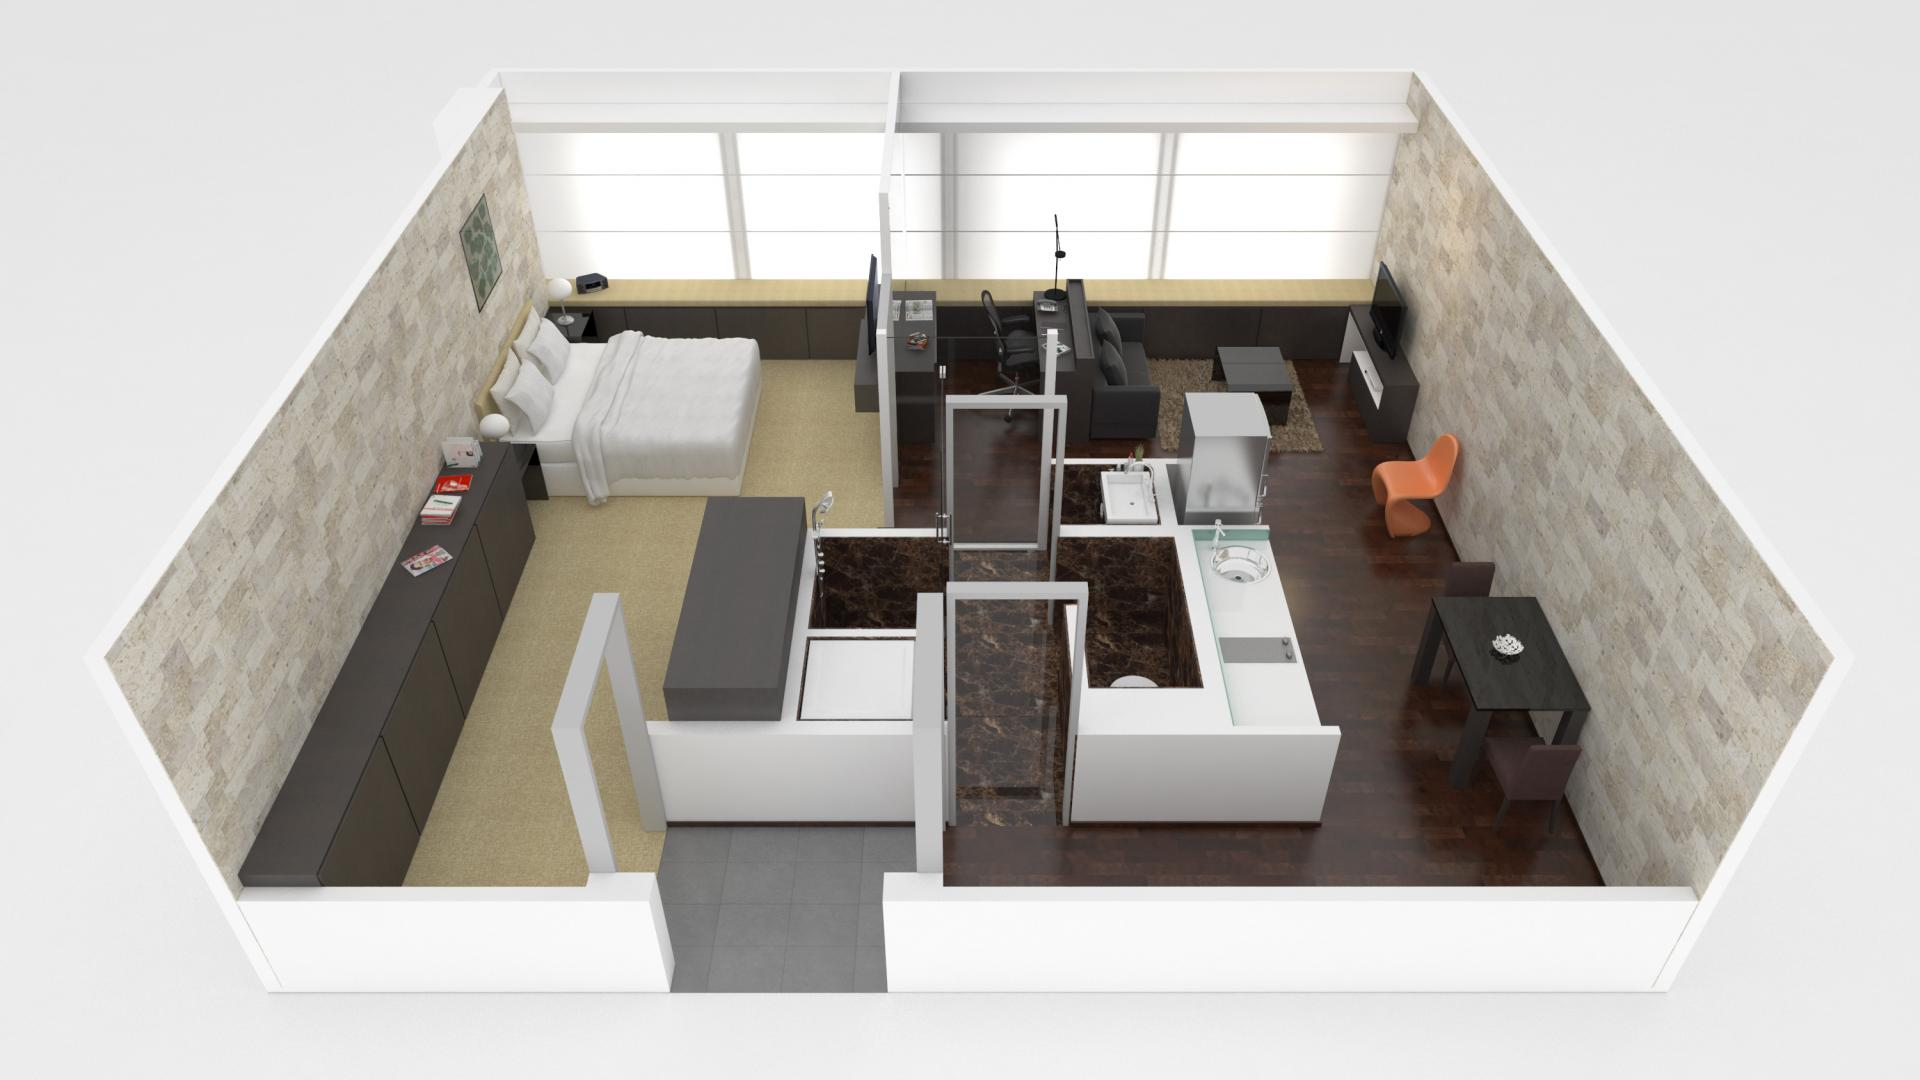 1 bed premium floor plan at Pan Pacific Serviced Suites Orchard